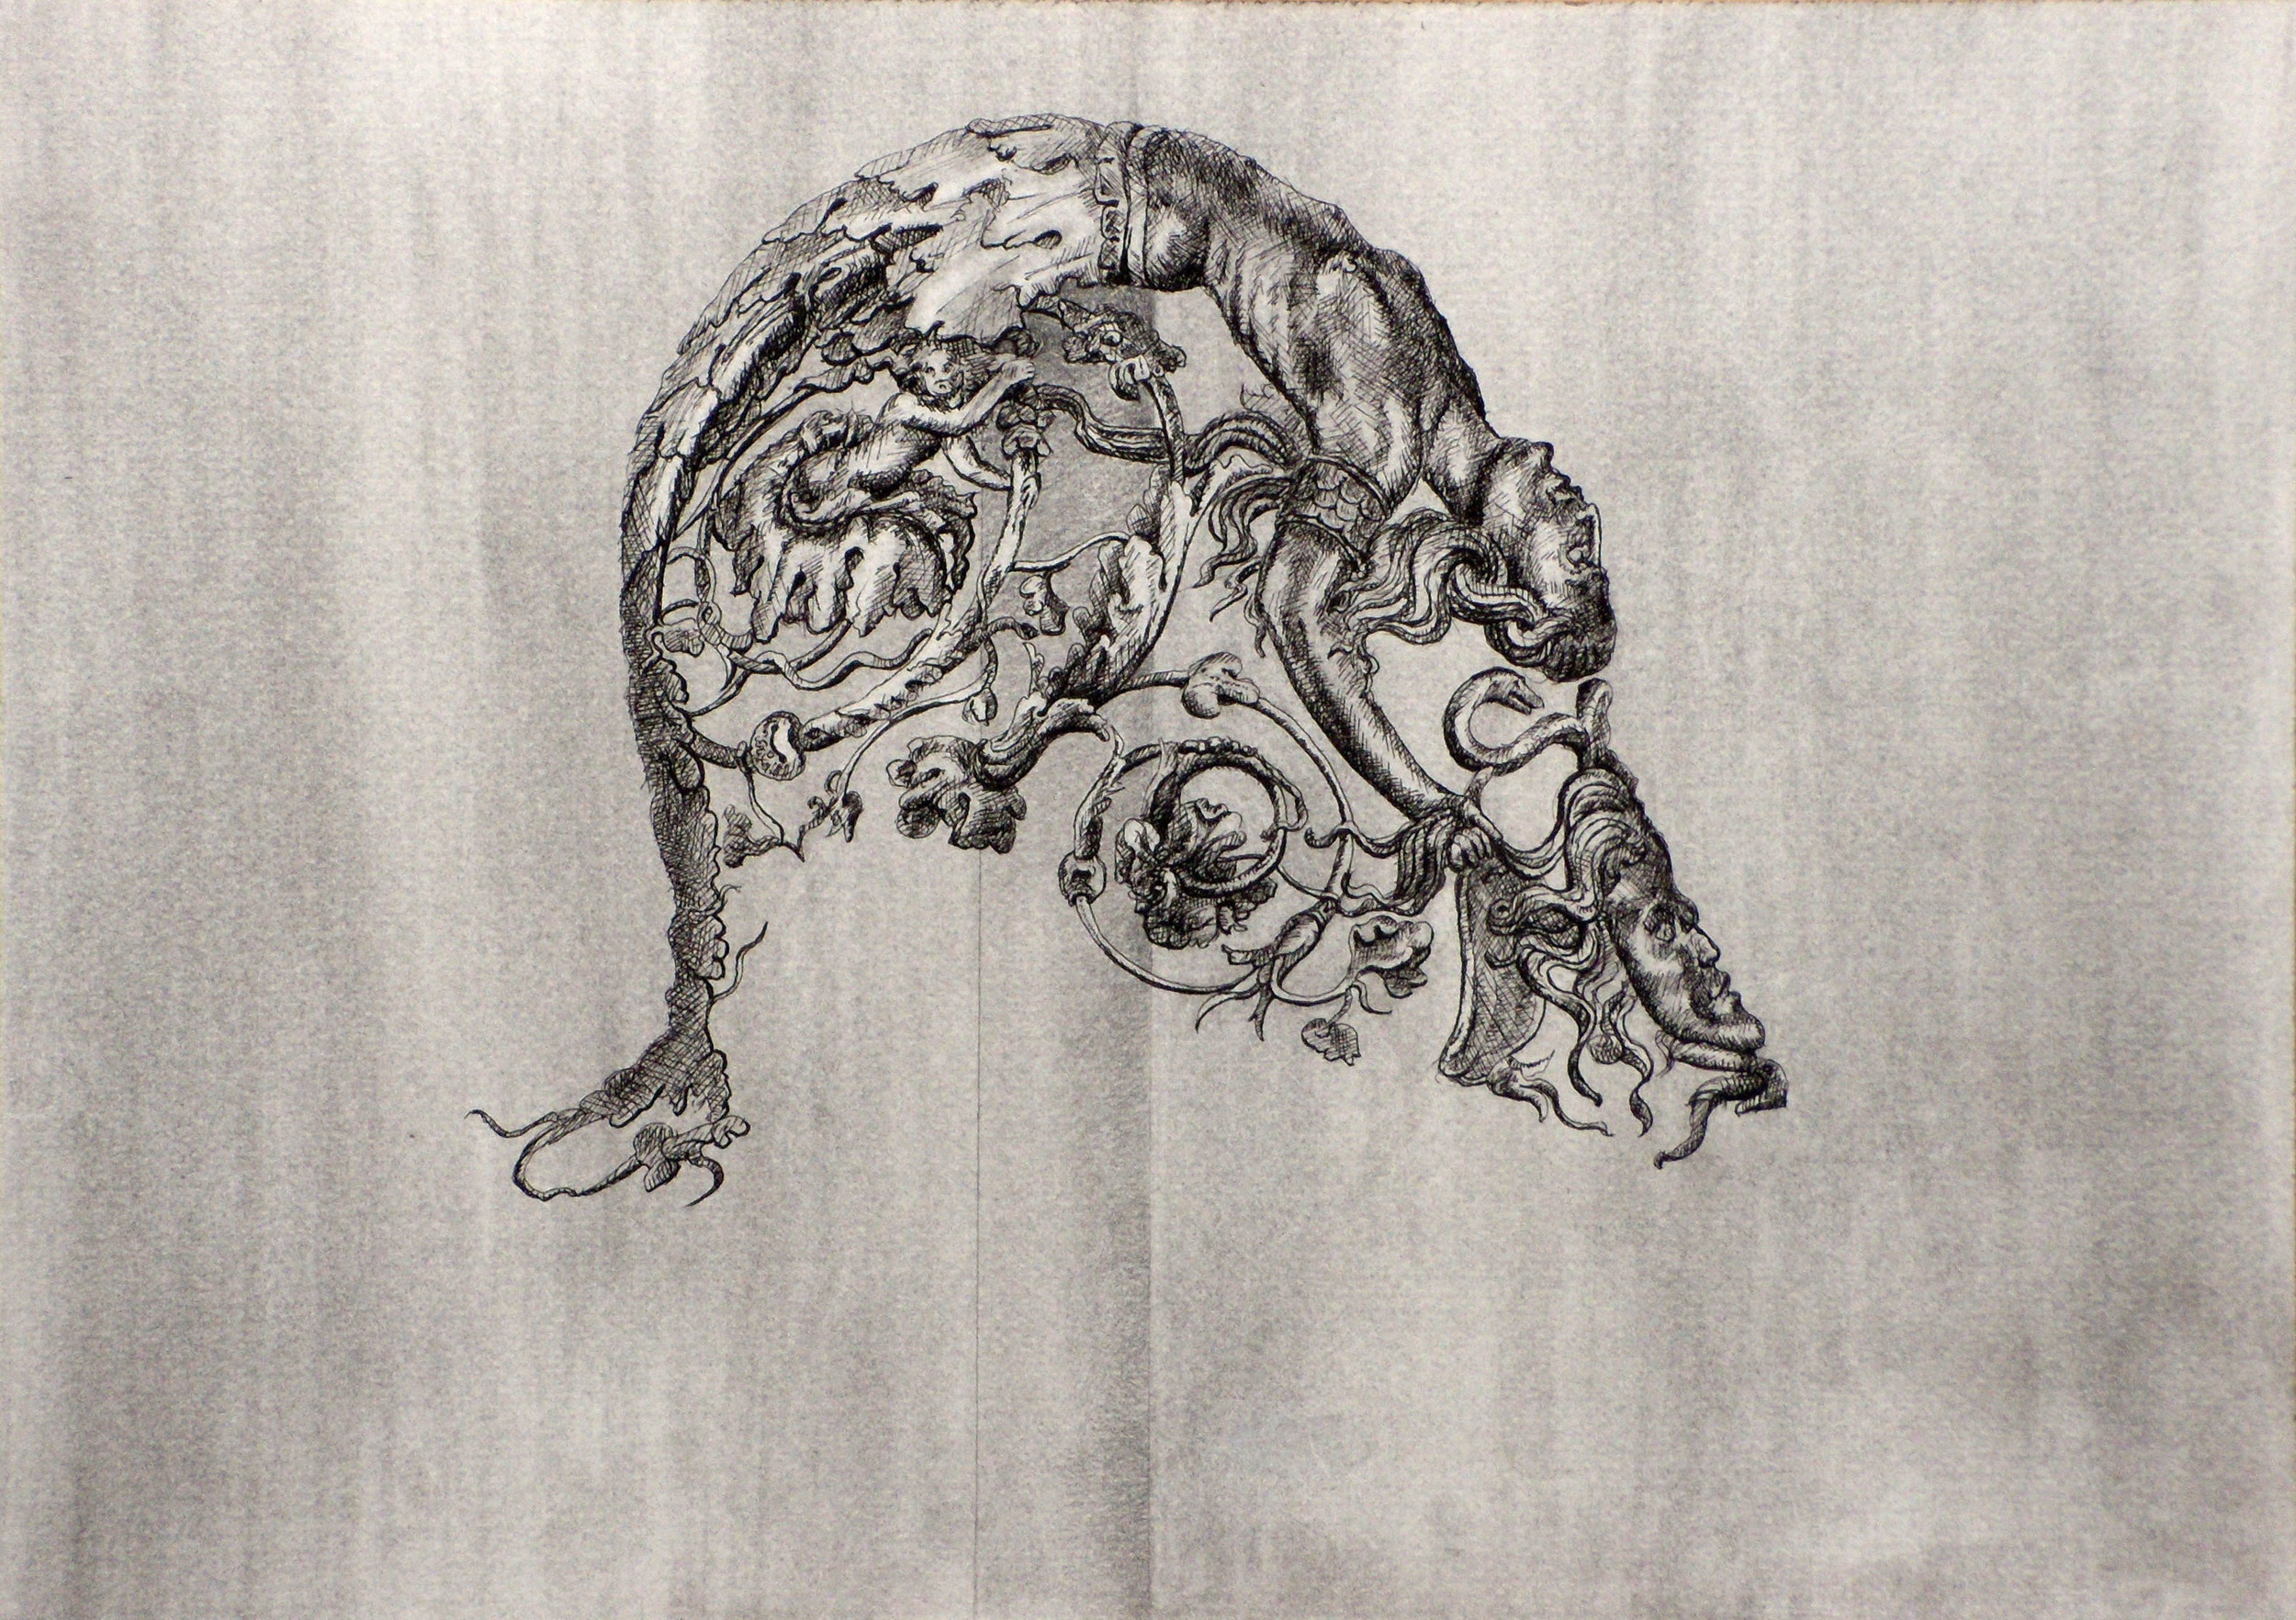 Isolated Helmet Decoration   2 , 2010 Graphite, charcoal, and black pen on paper 8 x 11 1/2 inches